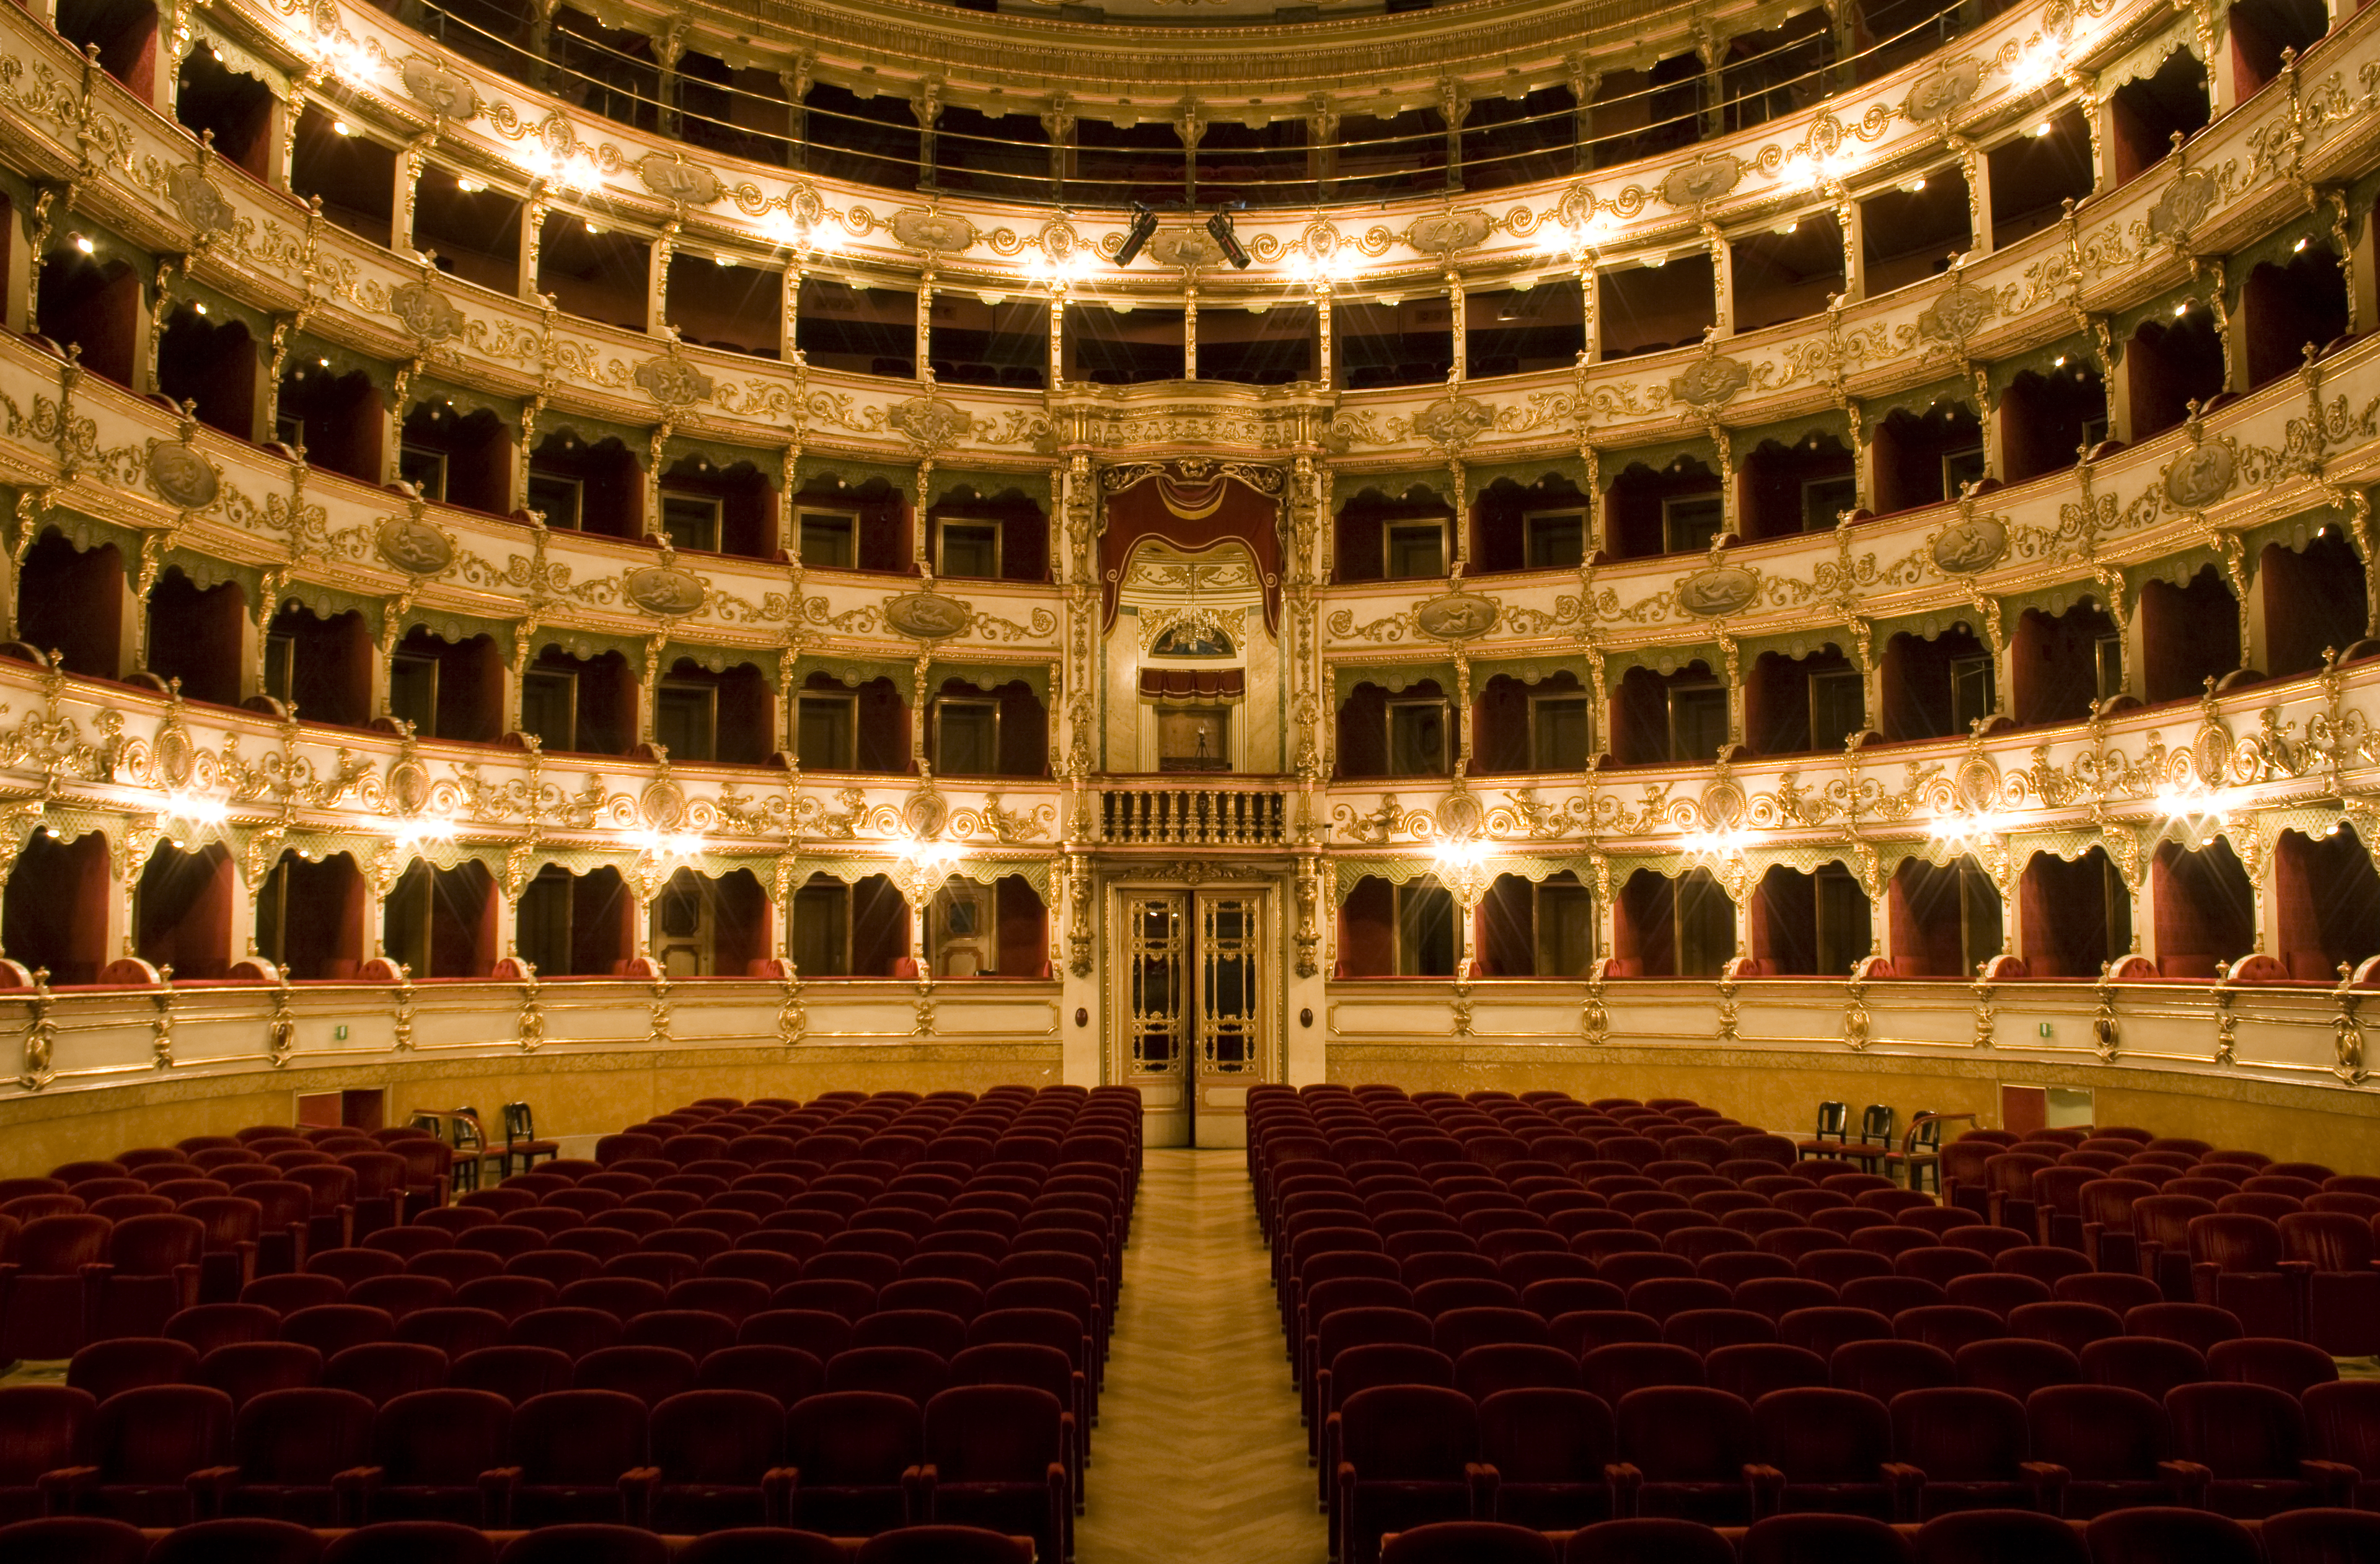 https://upload.wikimedia.org/wikipedia/commons/b/b0/Teatro_Grande_(Sala).jpg